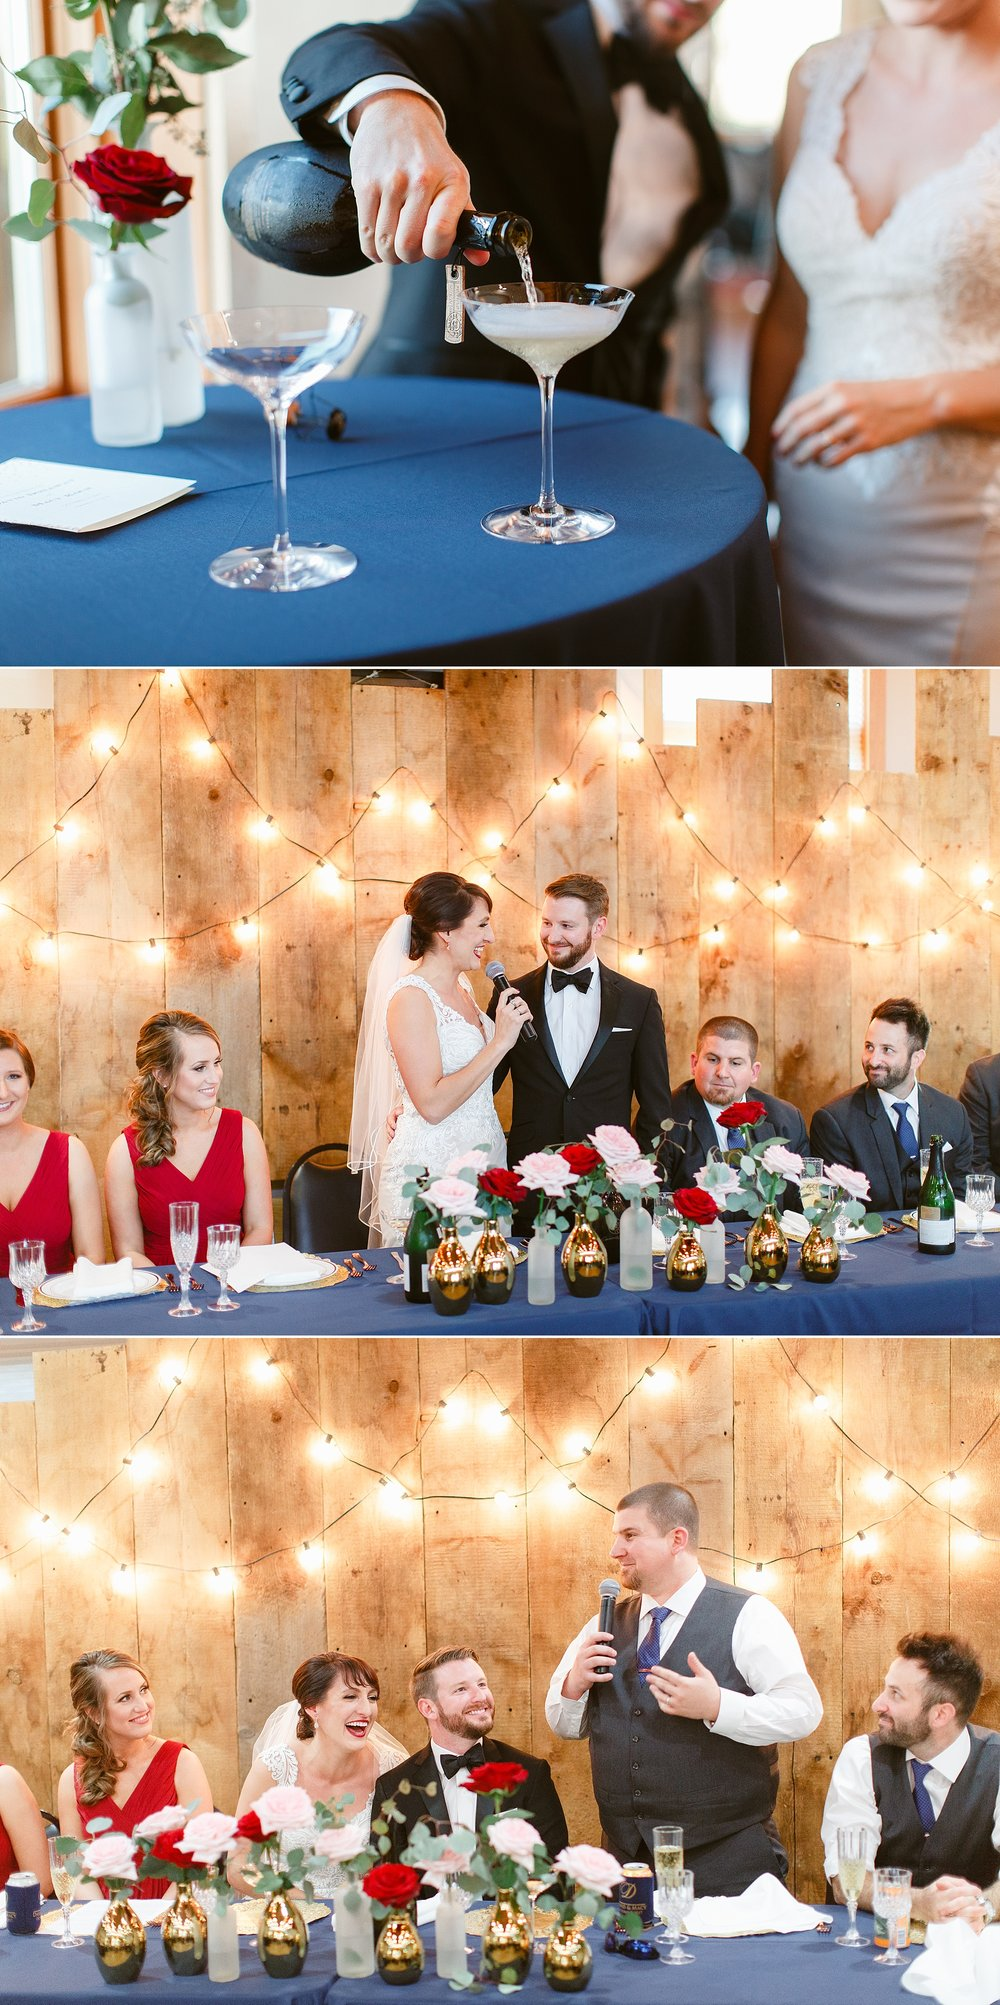 Midwest fine art wedding Des Moines Fall Wedding photographer_0258.jpg